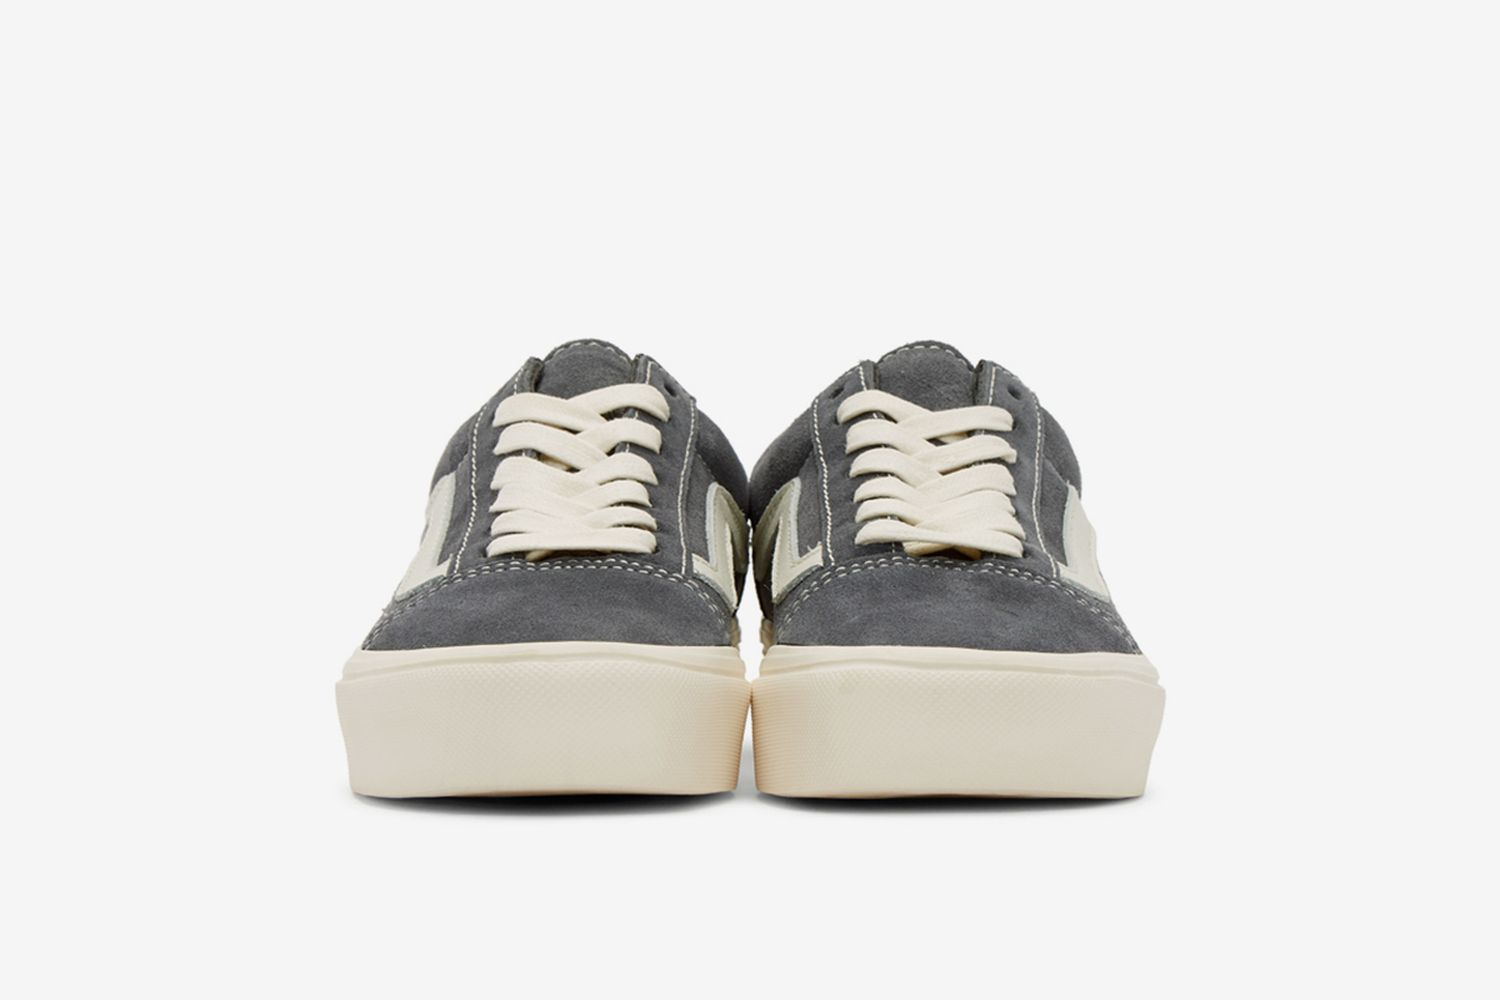 Old Skool Lite LX Sneakers